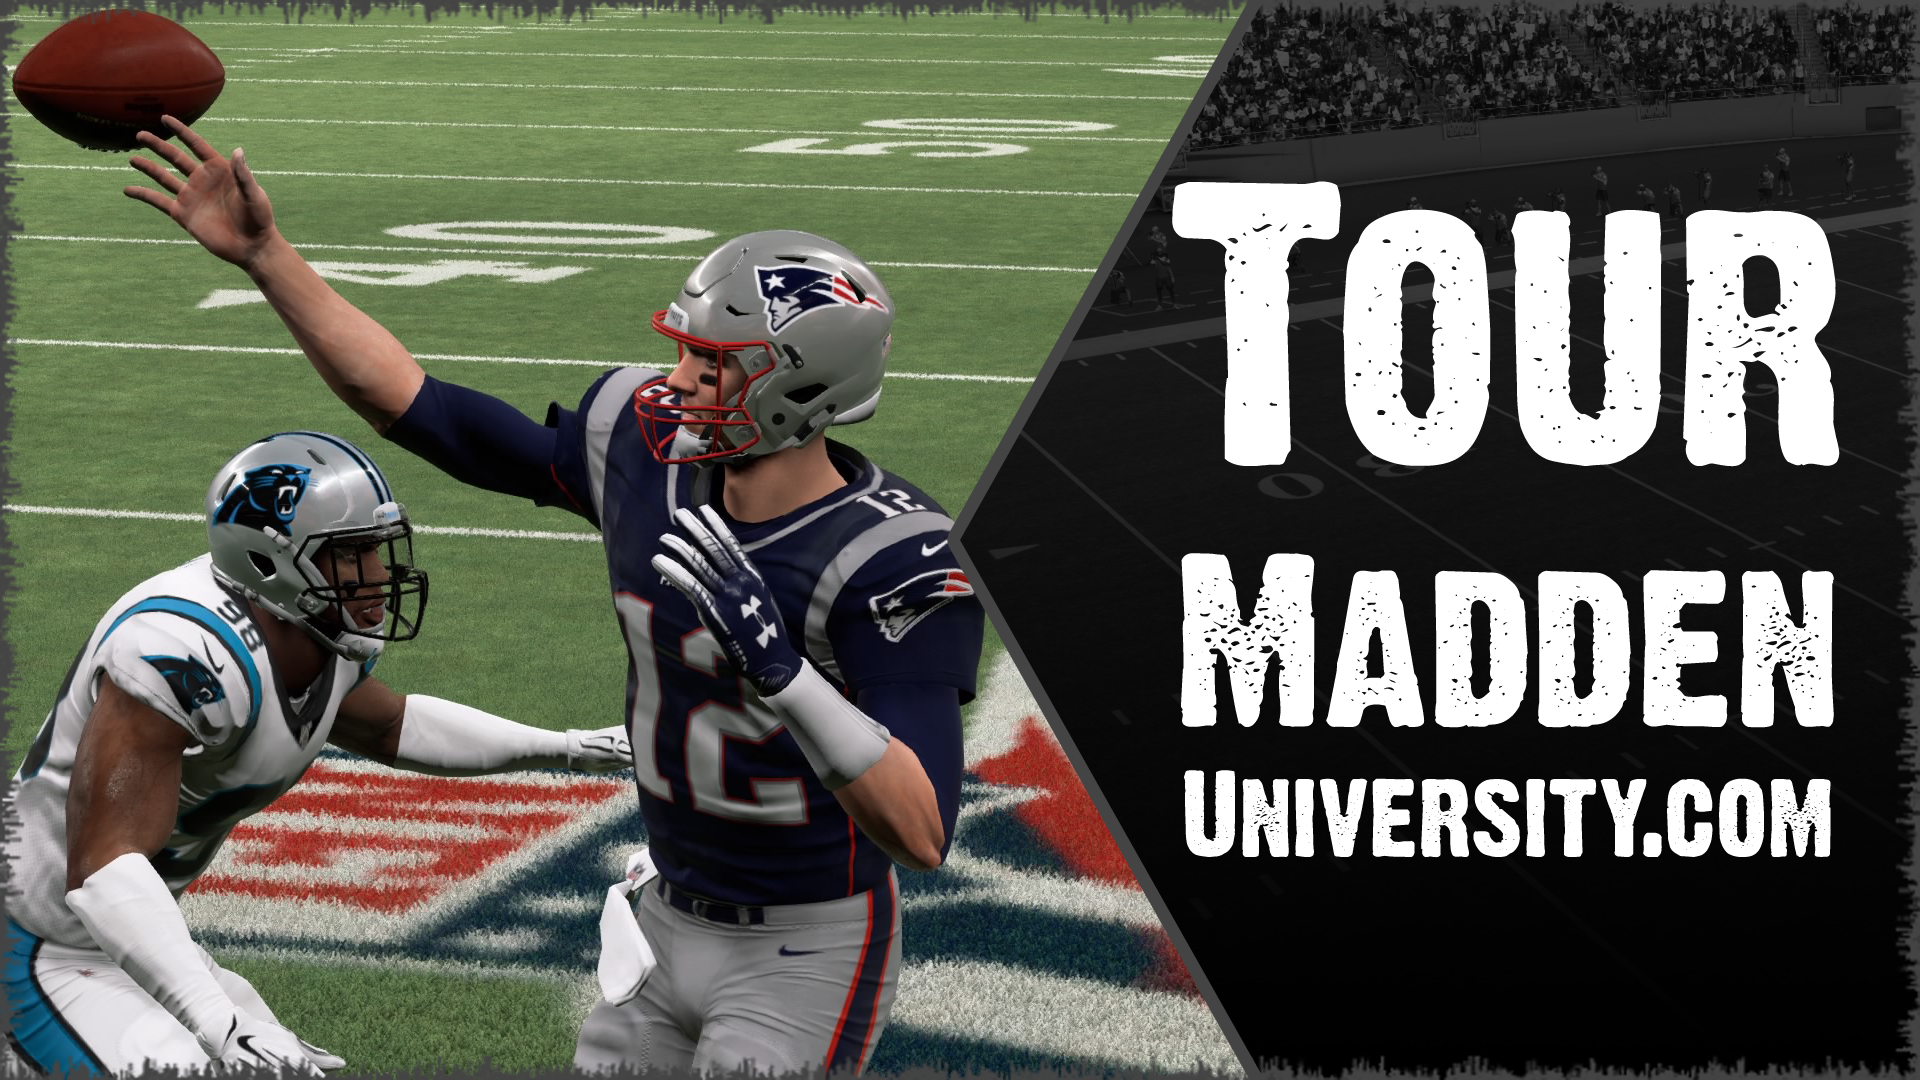 https://www.maddenuniversity.com/images/articles/Tour.png